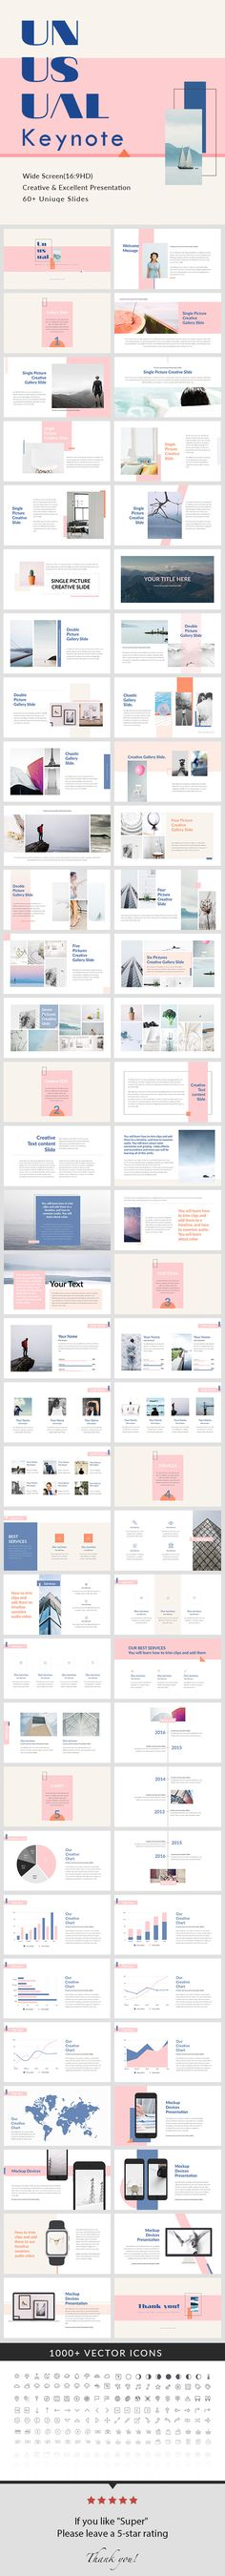 Unusual - Keynote Presentation Template by General Description Wide Screen Size) Free Font Used 66 unique slides Master slides Creative Slides Easy Customize Lat Ui Design, Design Visual, Keynote Design, Slide Design, Book Design, Layout Design, Design Social, Deco Design, Keynote Presentation